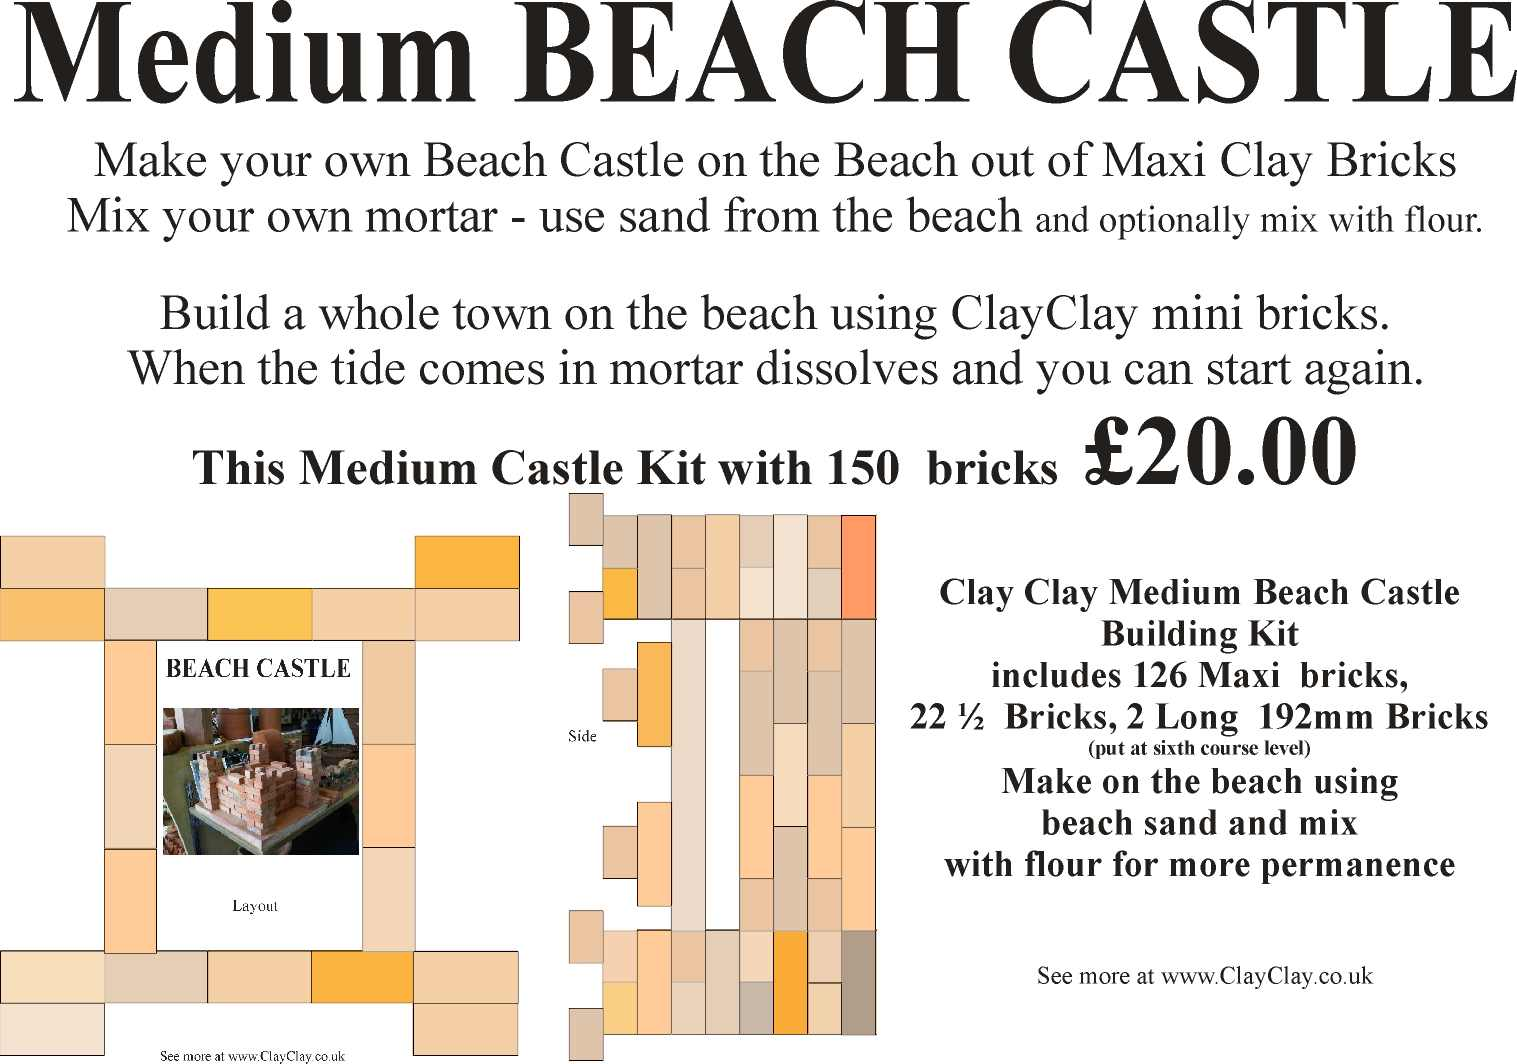 Medium Beach Castle Kit Maxi Bricks. Make own the beach castle and use Beach sand mixed with flour as mortar.